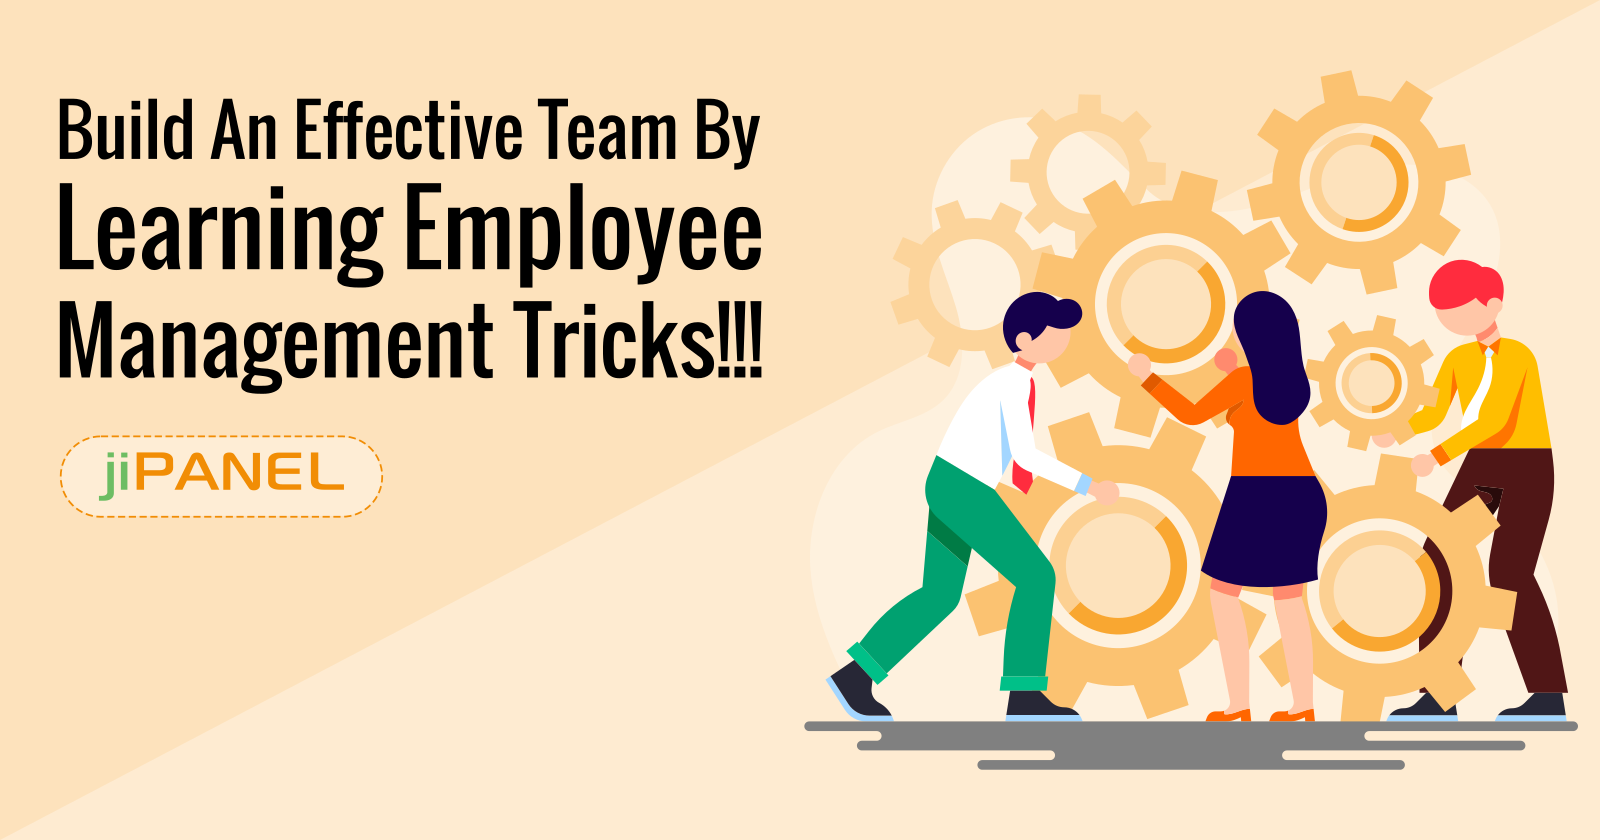 Build An Effective Team By Learning Employee Management Tricks!!!